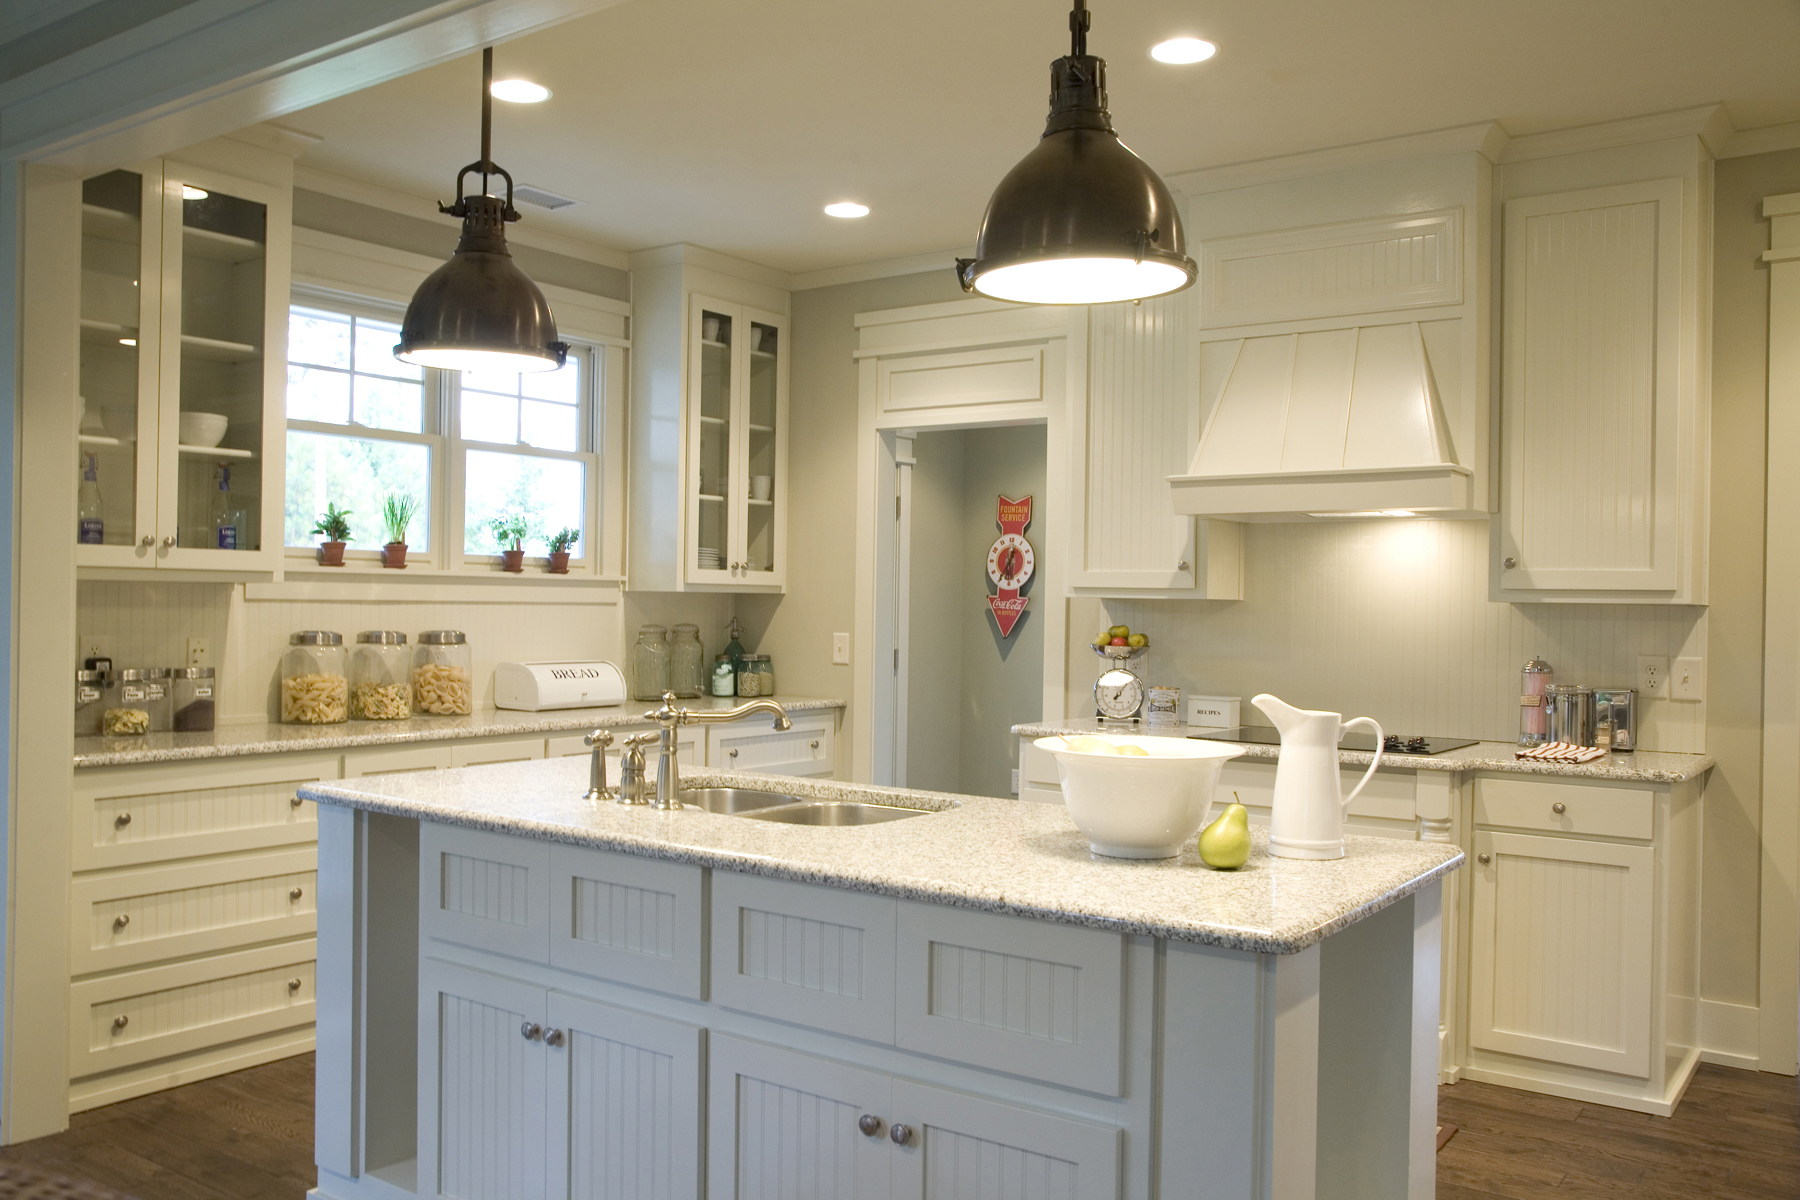 Deerwood kitchen 2